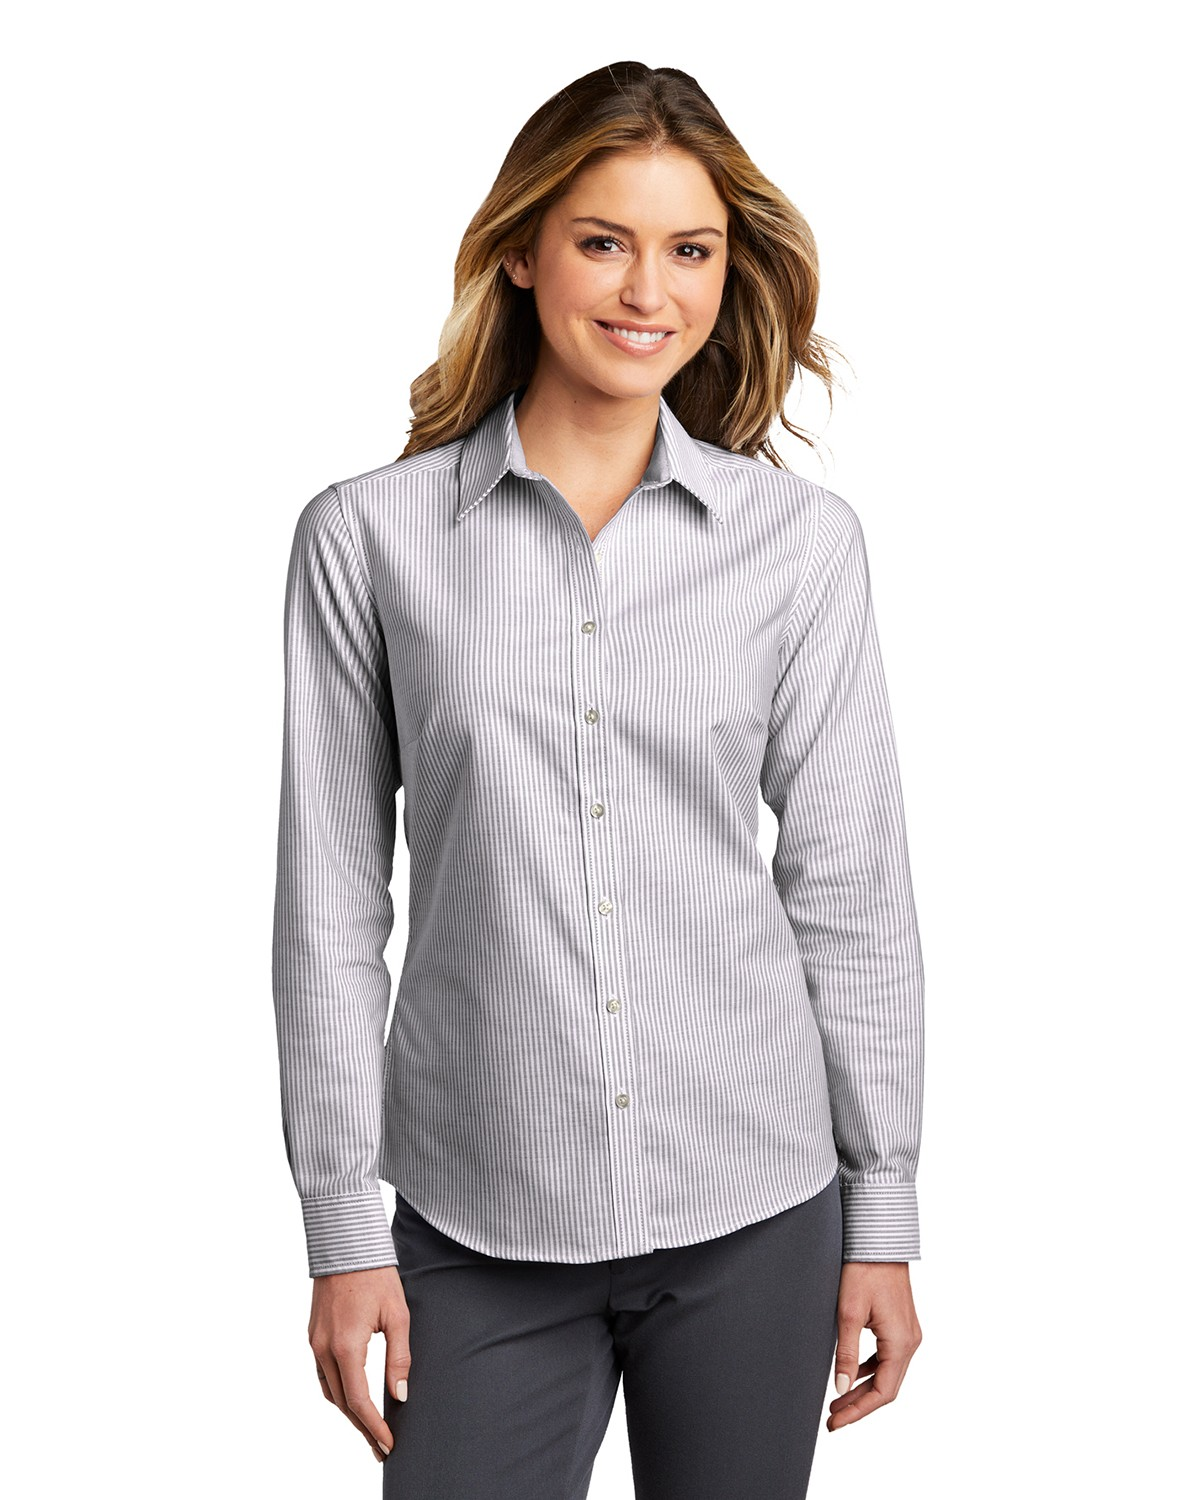 Port Authority LW657 Ladies SuperPro Oxford Stripe Shirt - Black/ White - XS from Port Authority